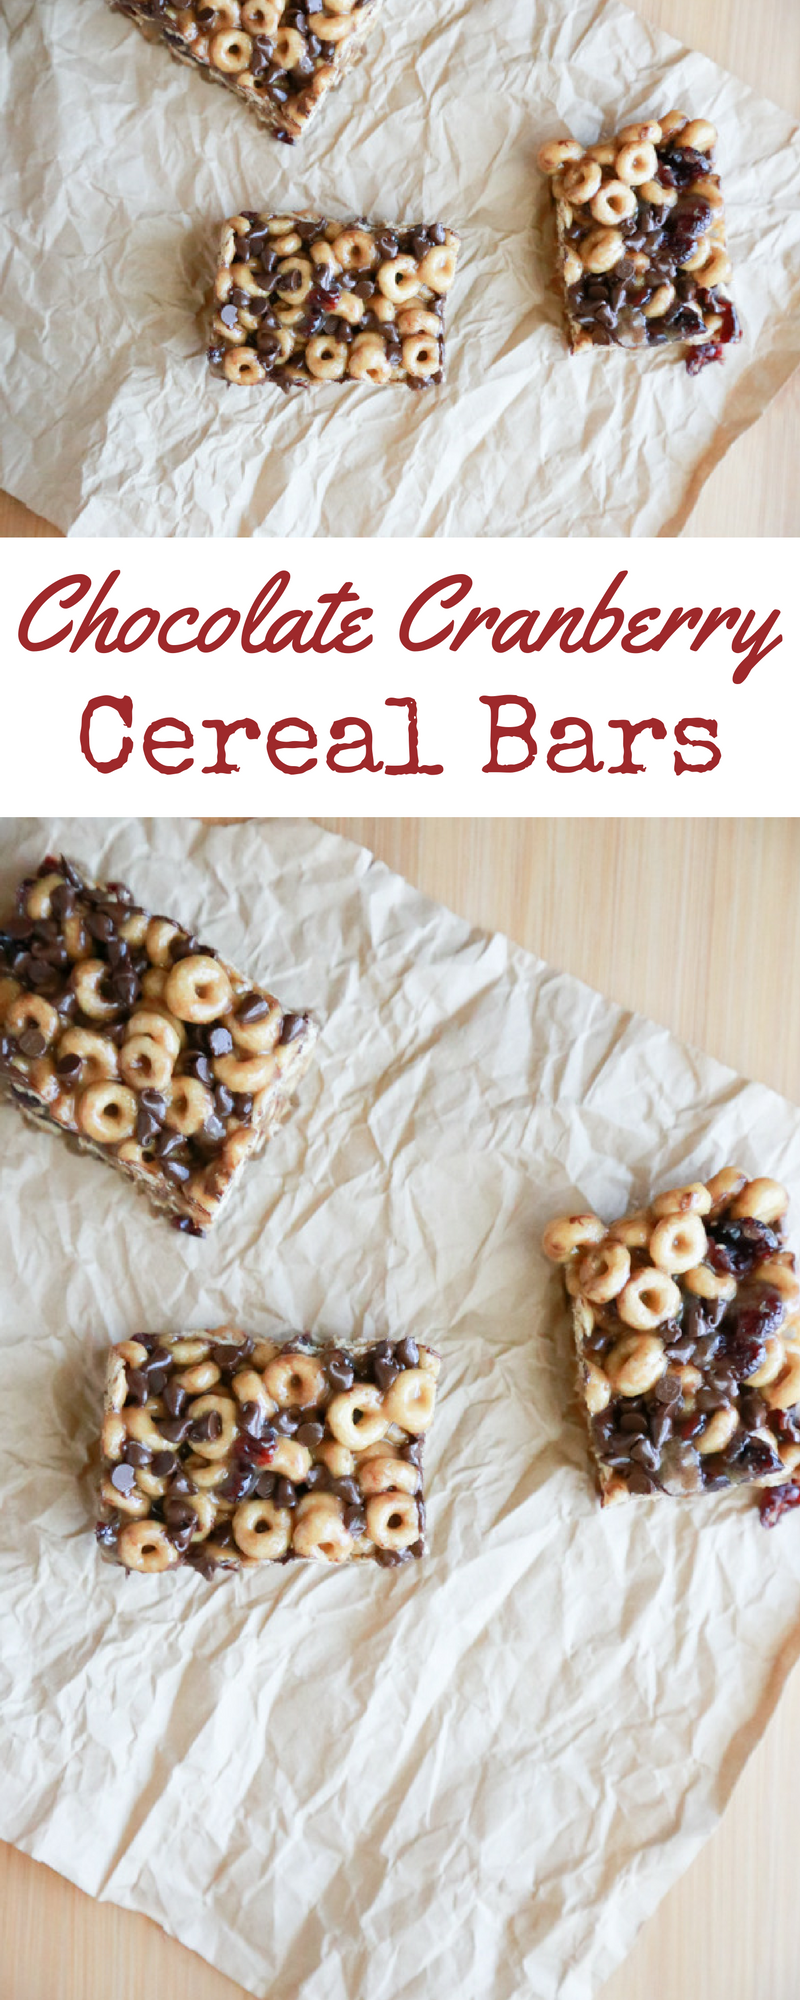 Forget about those mornings where you don't know what to serve for breakfast. Make these Chocolate Cranberry Cereal Bars and make breakfast easy.